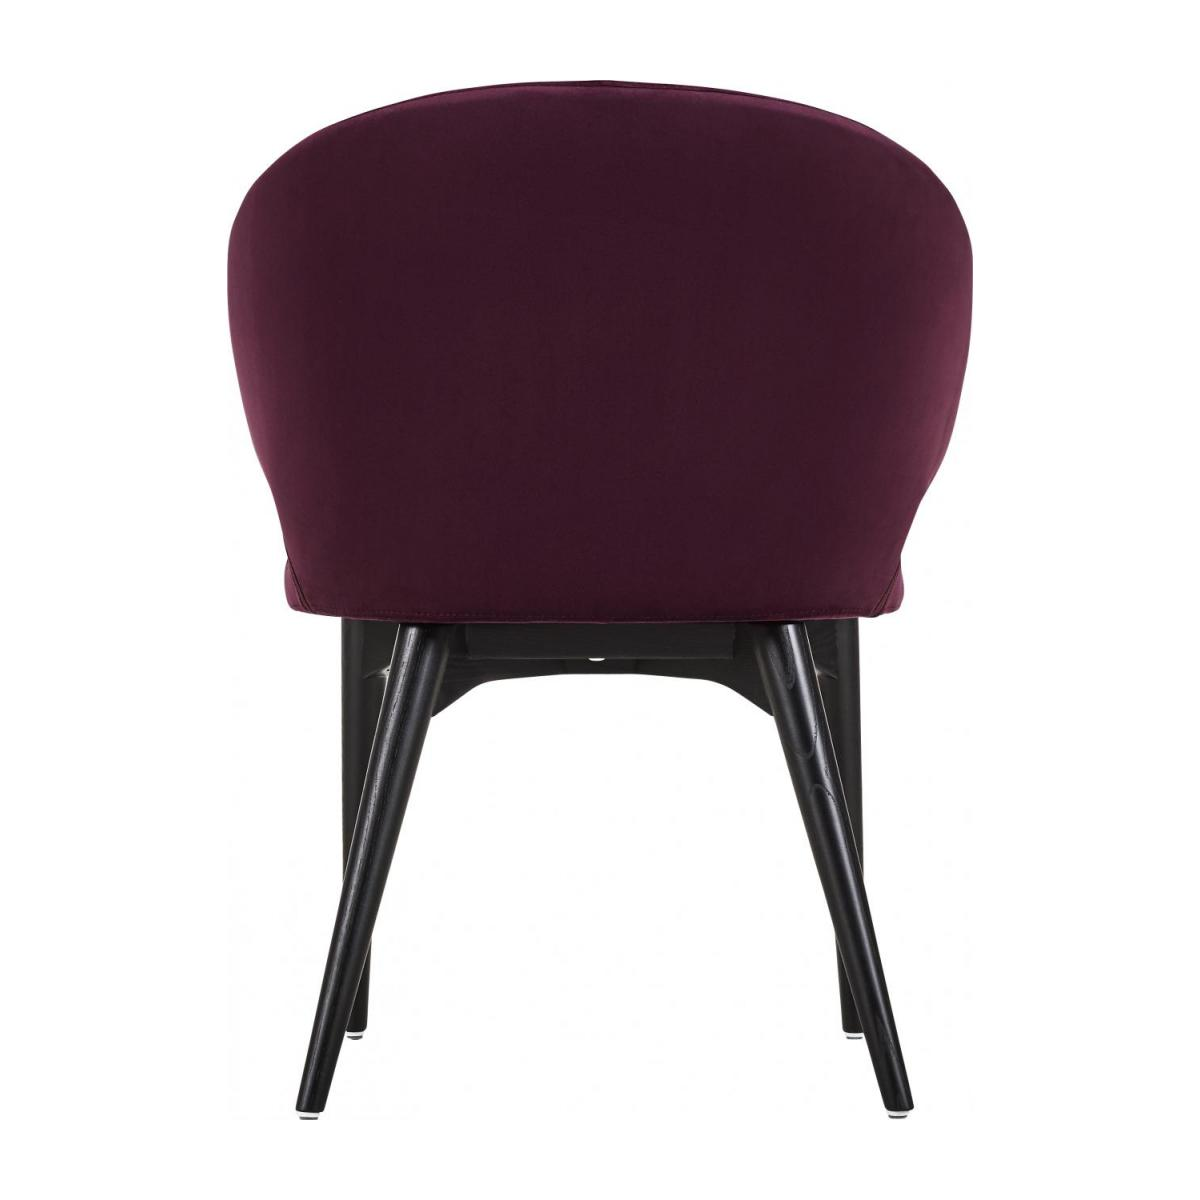 Chaise en velours - Bordeaux n°3